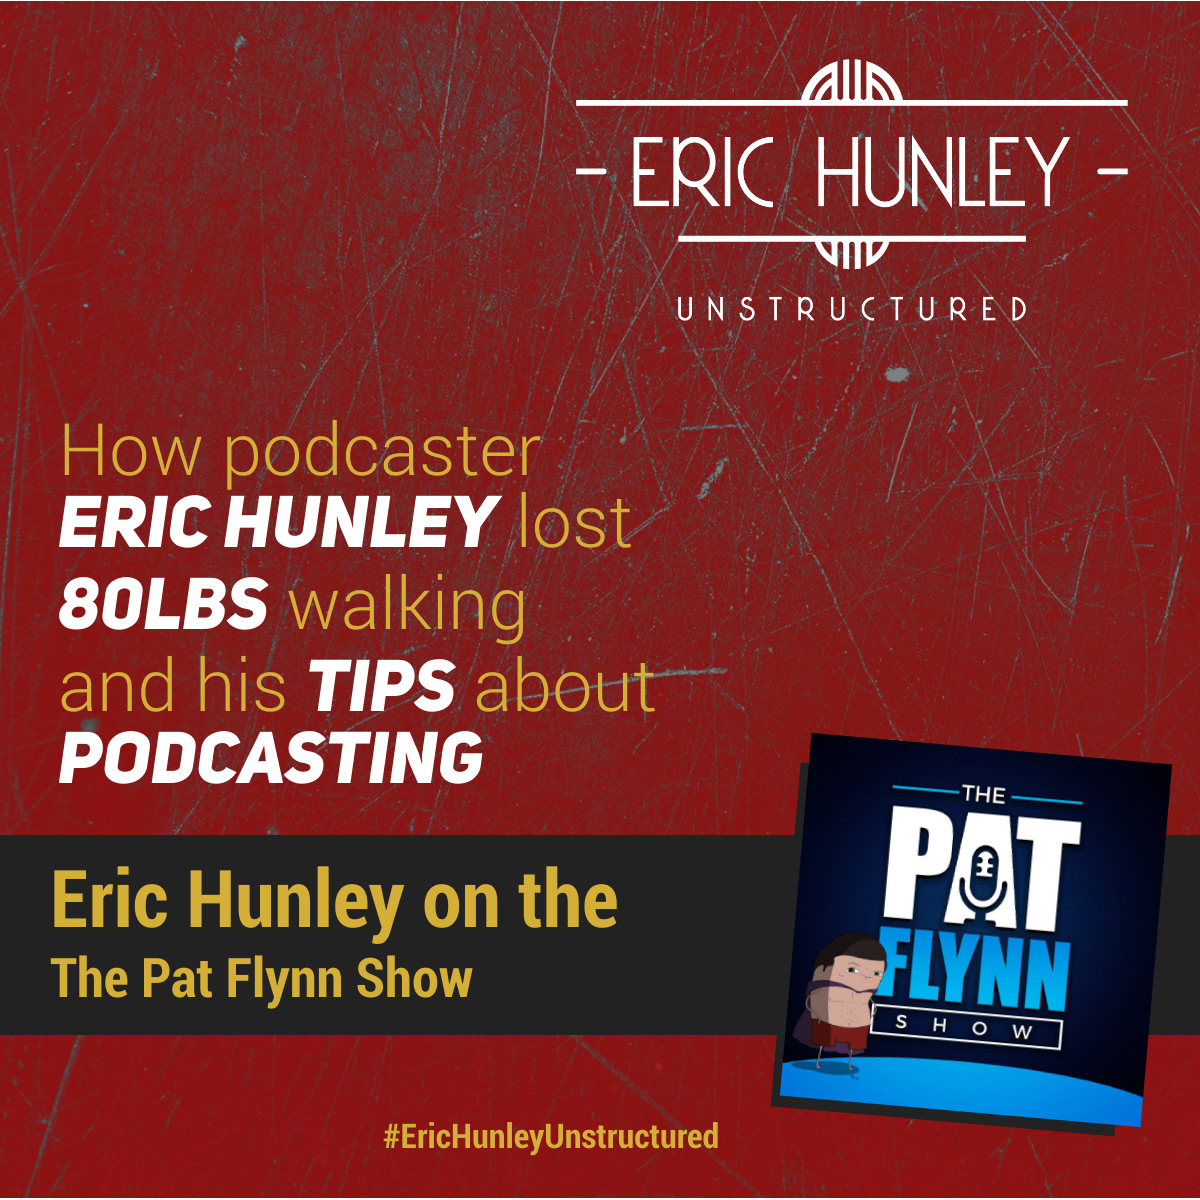 Eric Hunley Podcast Appearance Interviews - The Pat Flynn Show Podcast Square Post